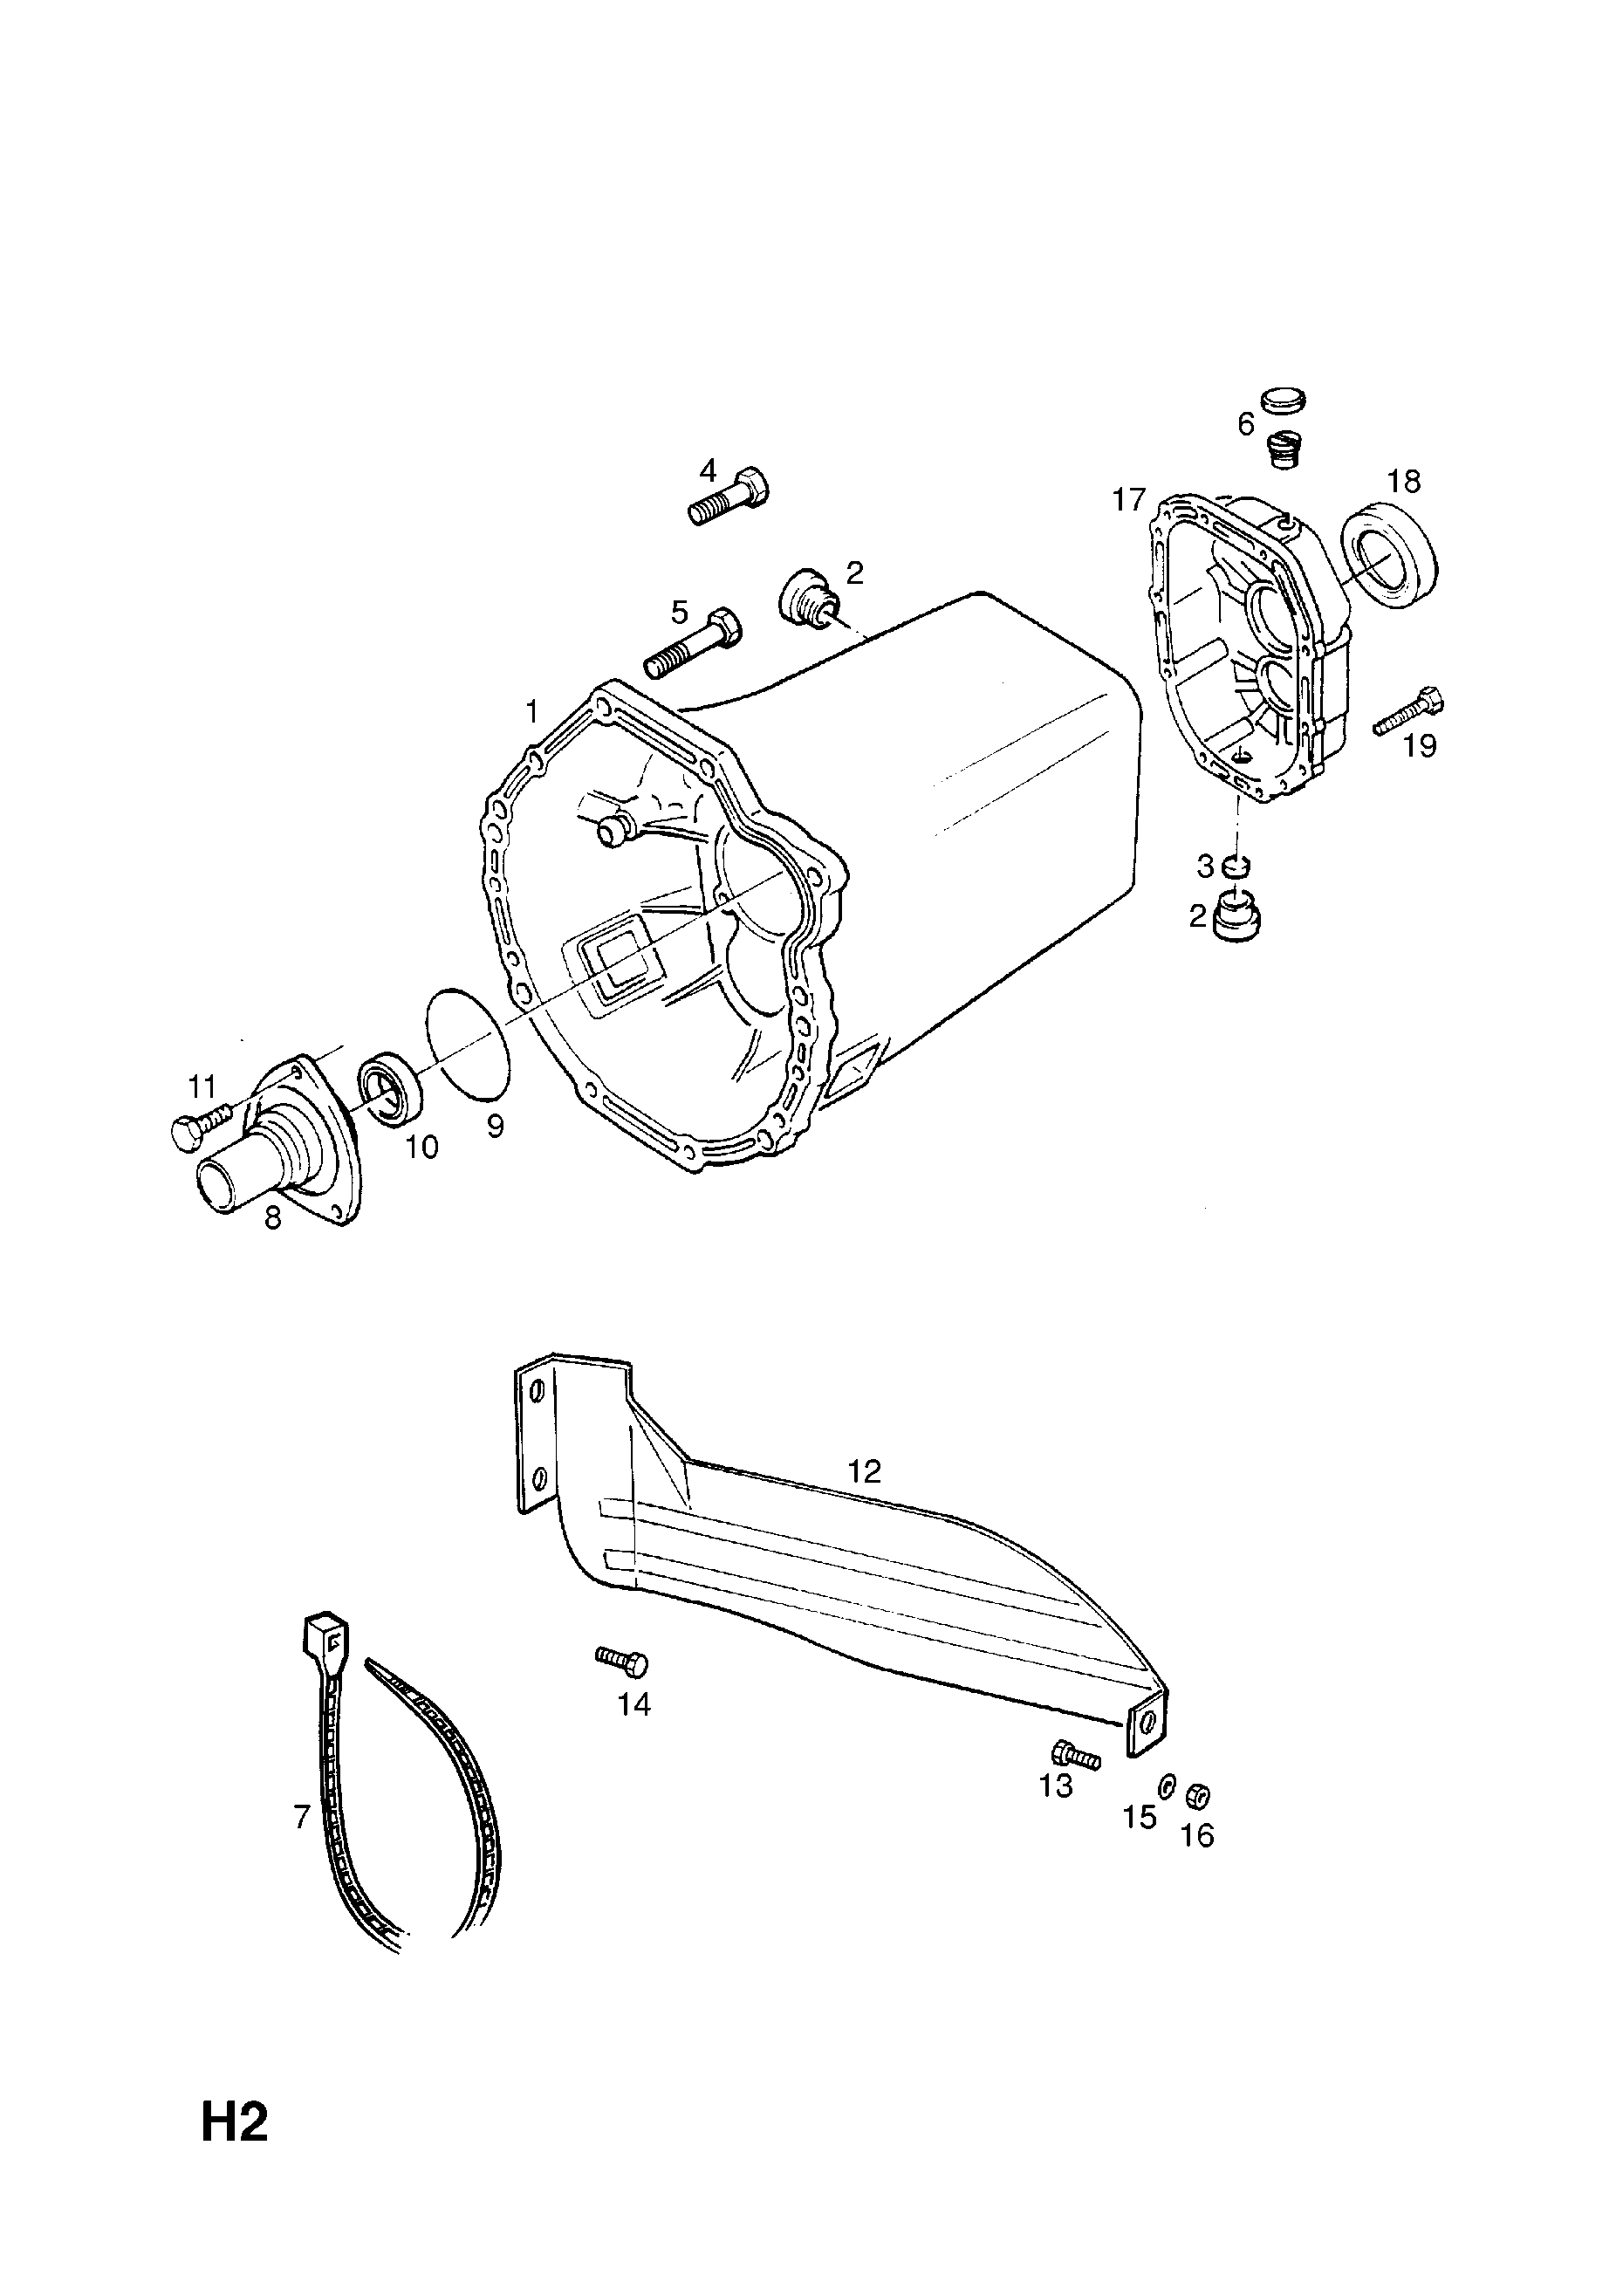 Vauxhall Senator B Transmission Case And Covers Opel Epc Online Diagrams